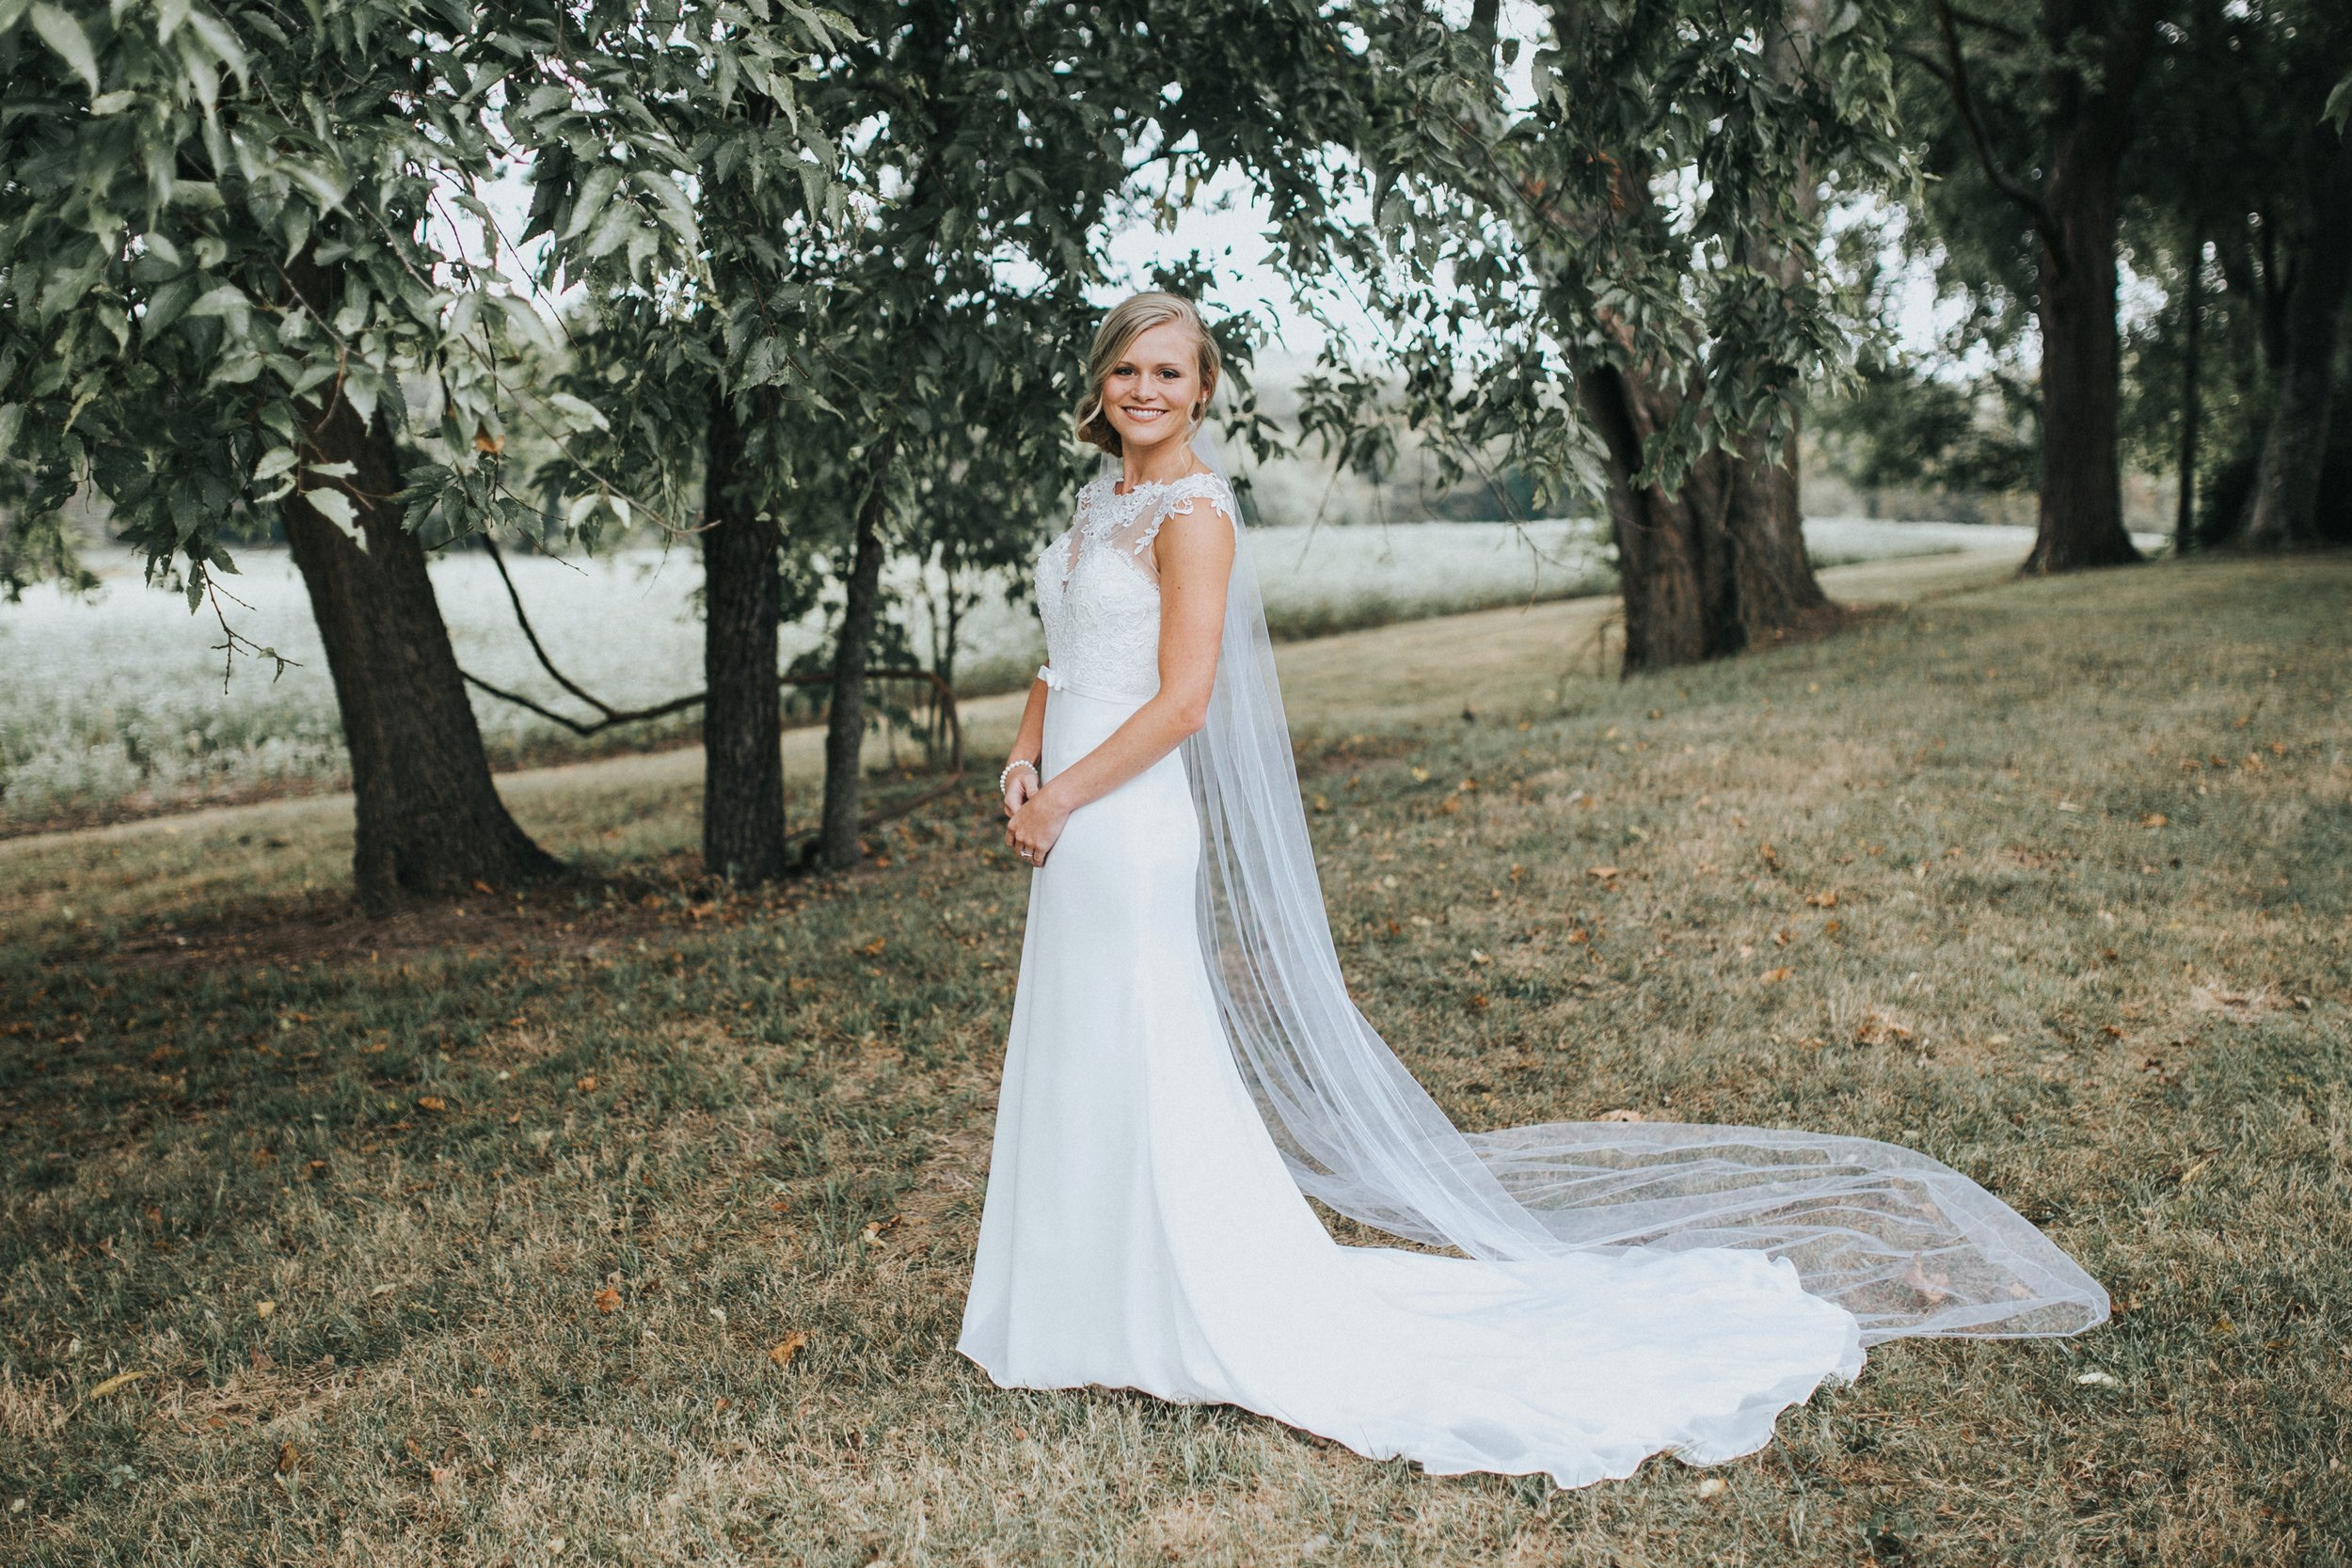 Virginia wedding photographer, Charlottesville wedding photographer, the hunt at Selma wedding, amelia virginia wedding photographer_0149.jpg